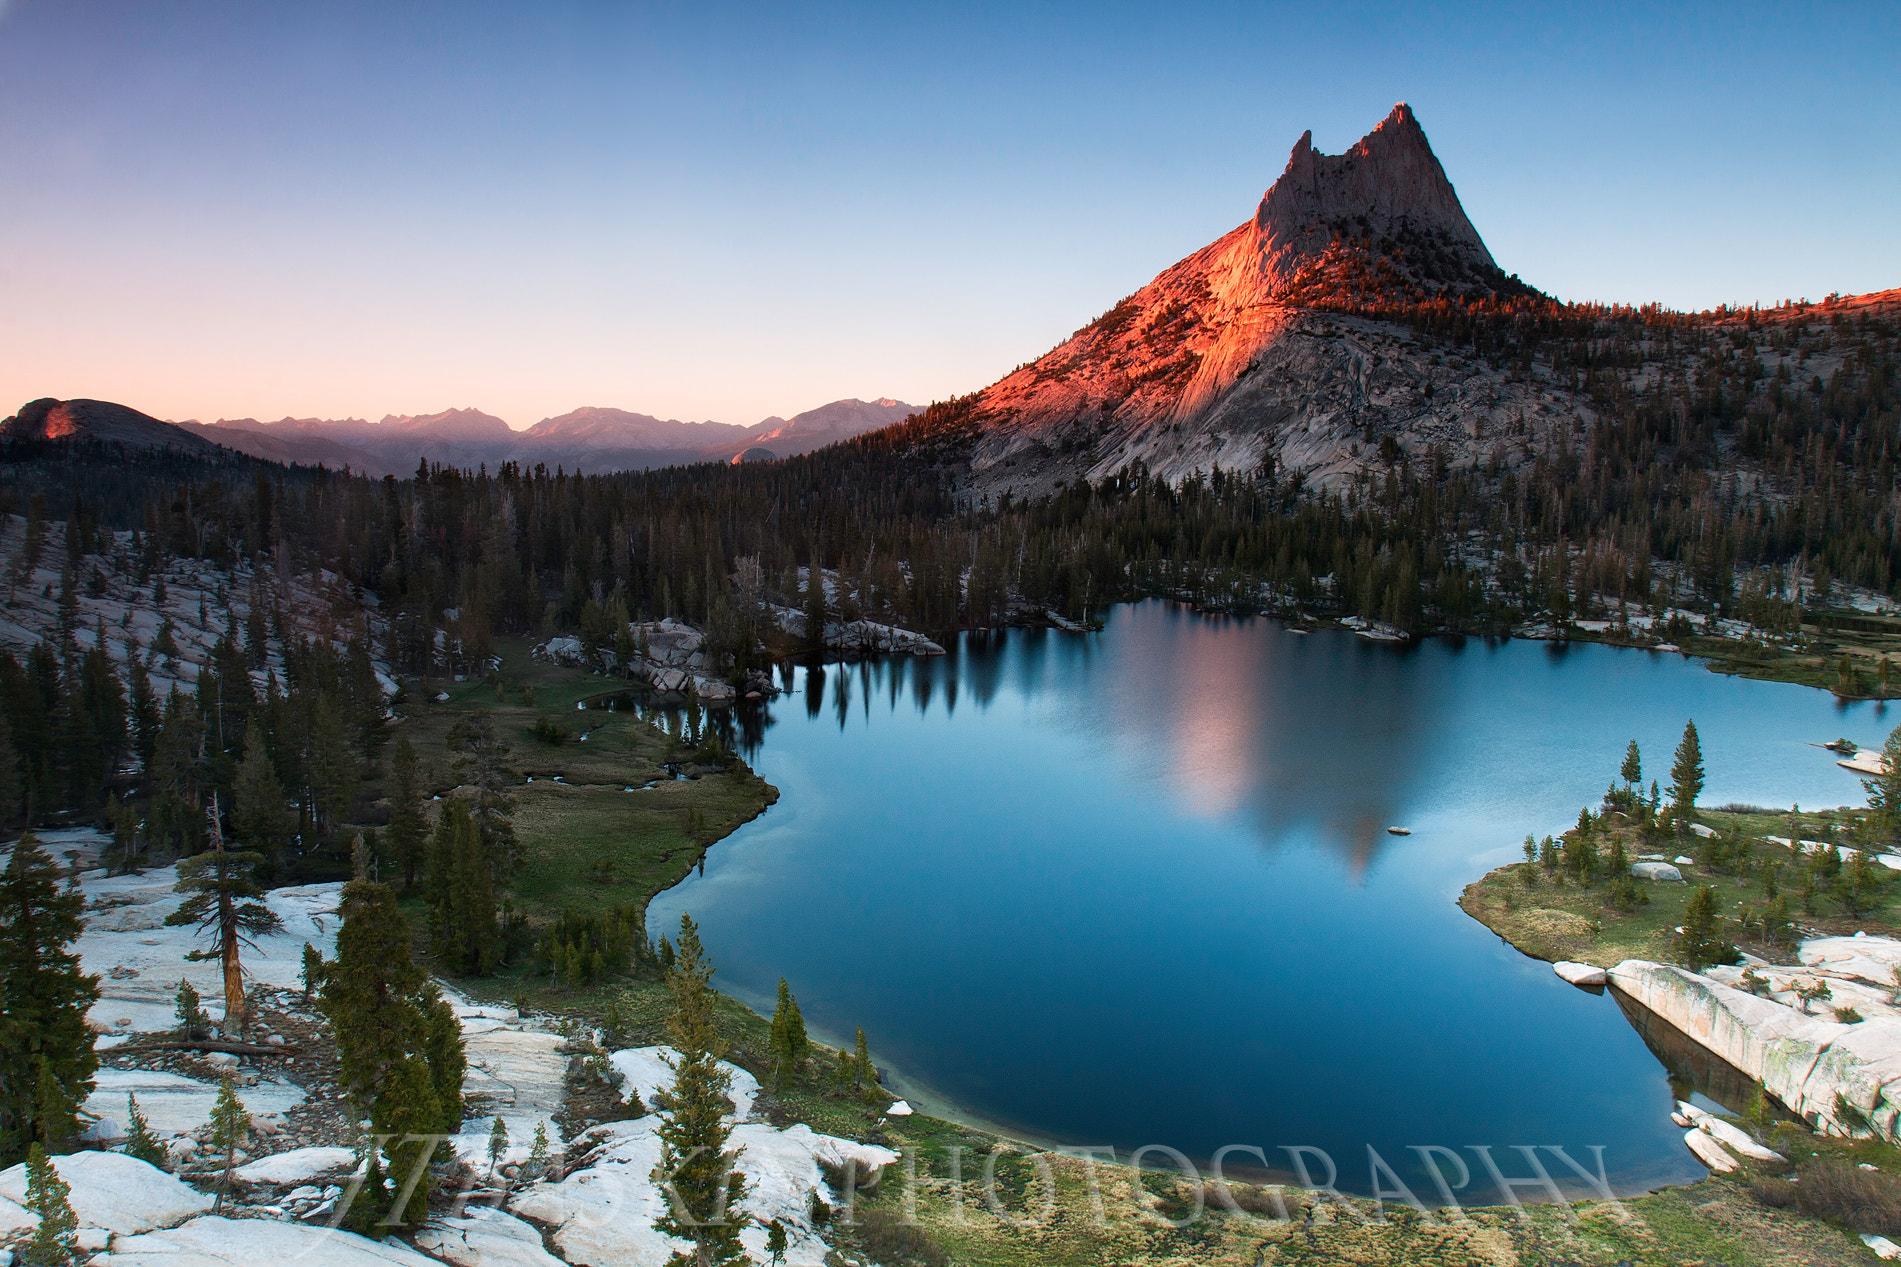 Photograph Upper Cathedral - Yosemite National Park by taylor baskin on 500px